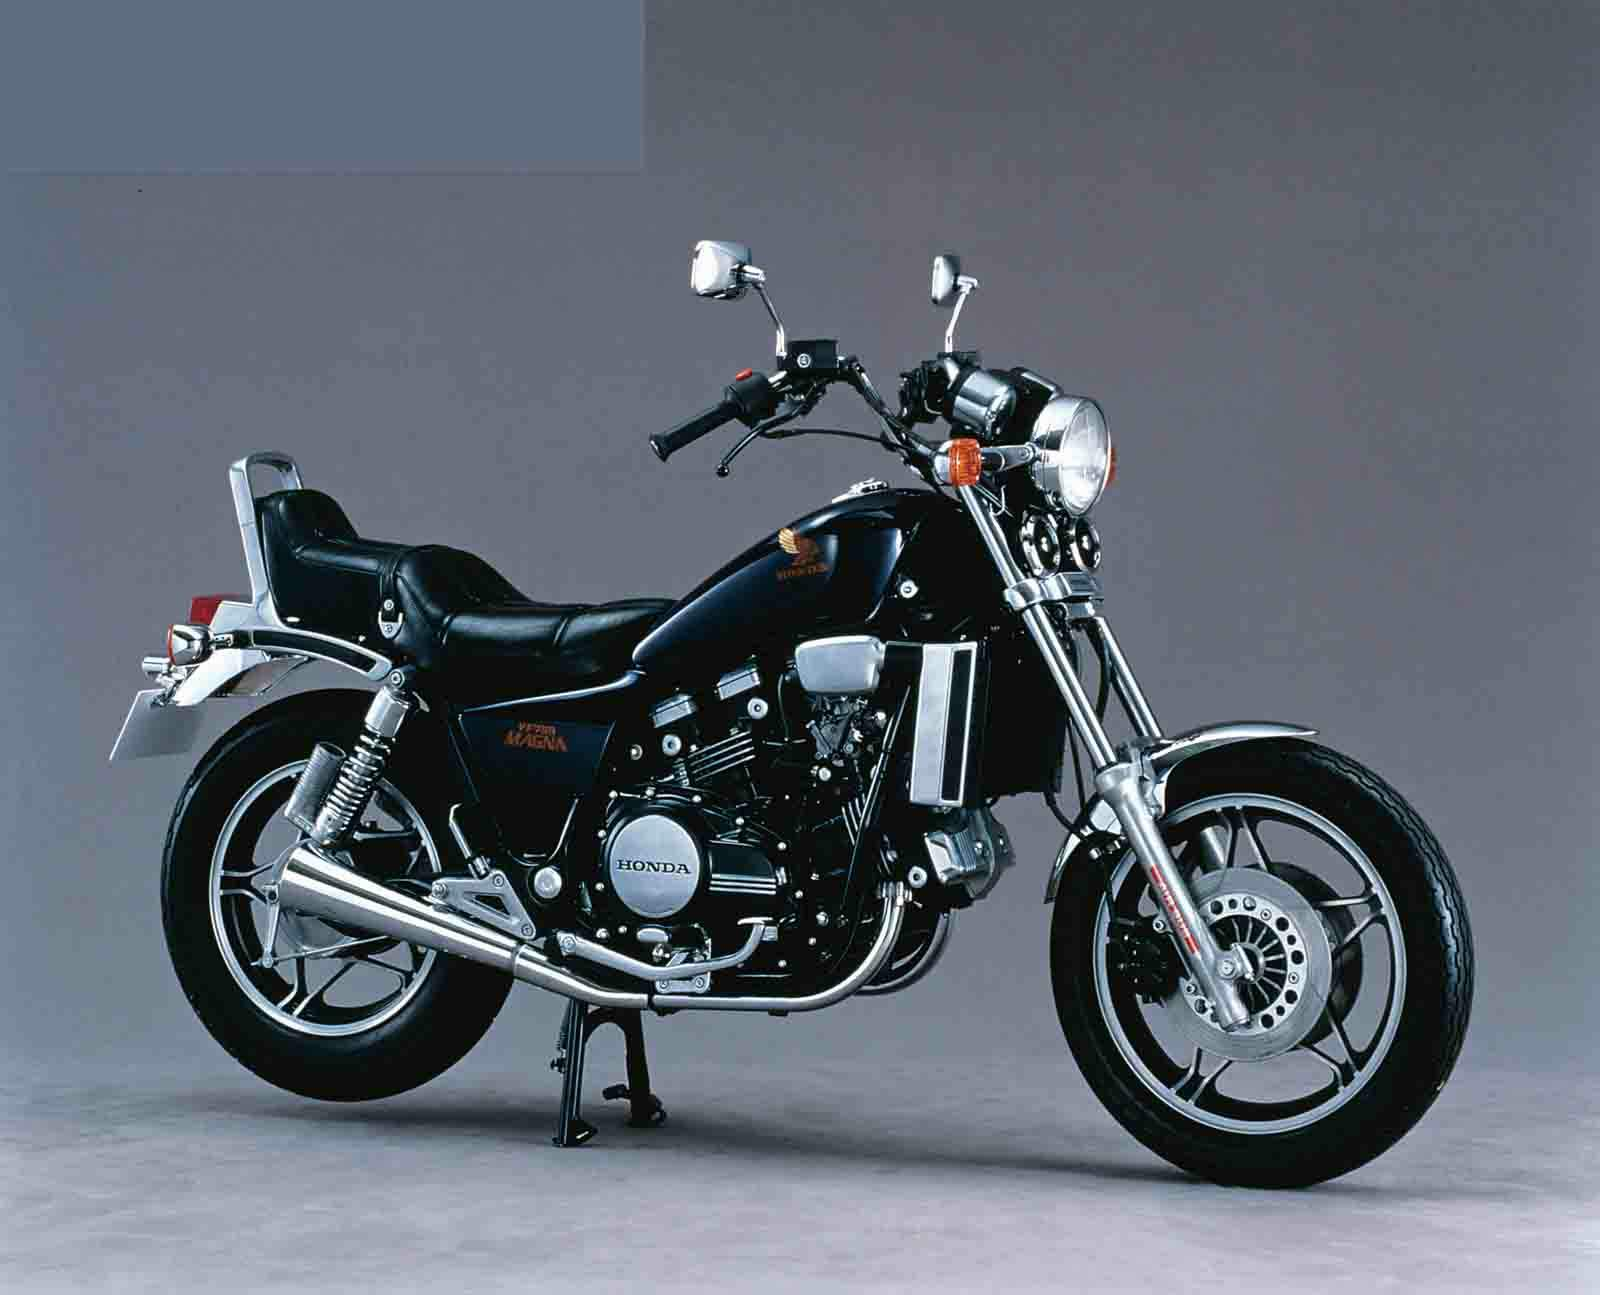 Honda VF 750 C Shadow 2000 images #81600